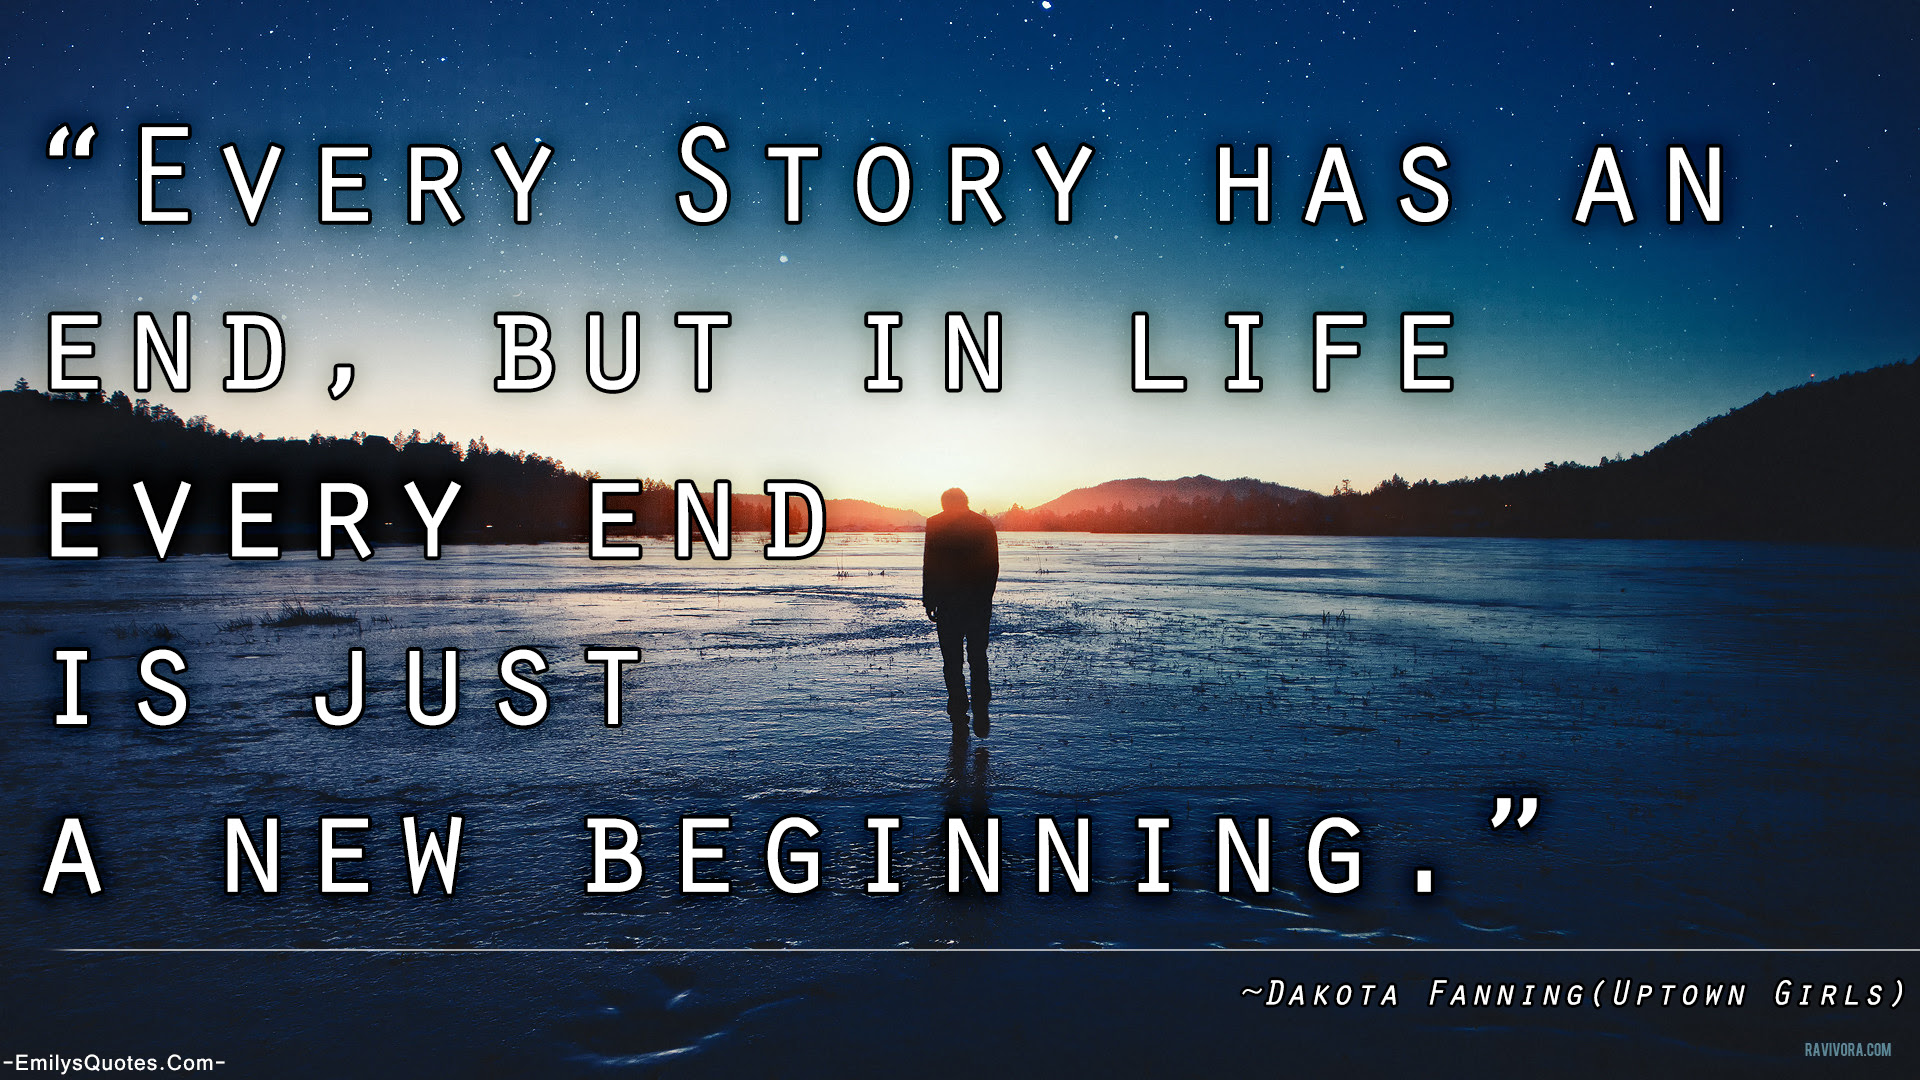 Every Story Has An End But In Life Every End Is Just A New